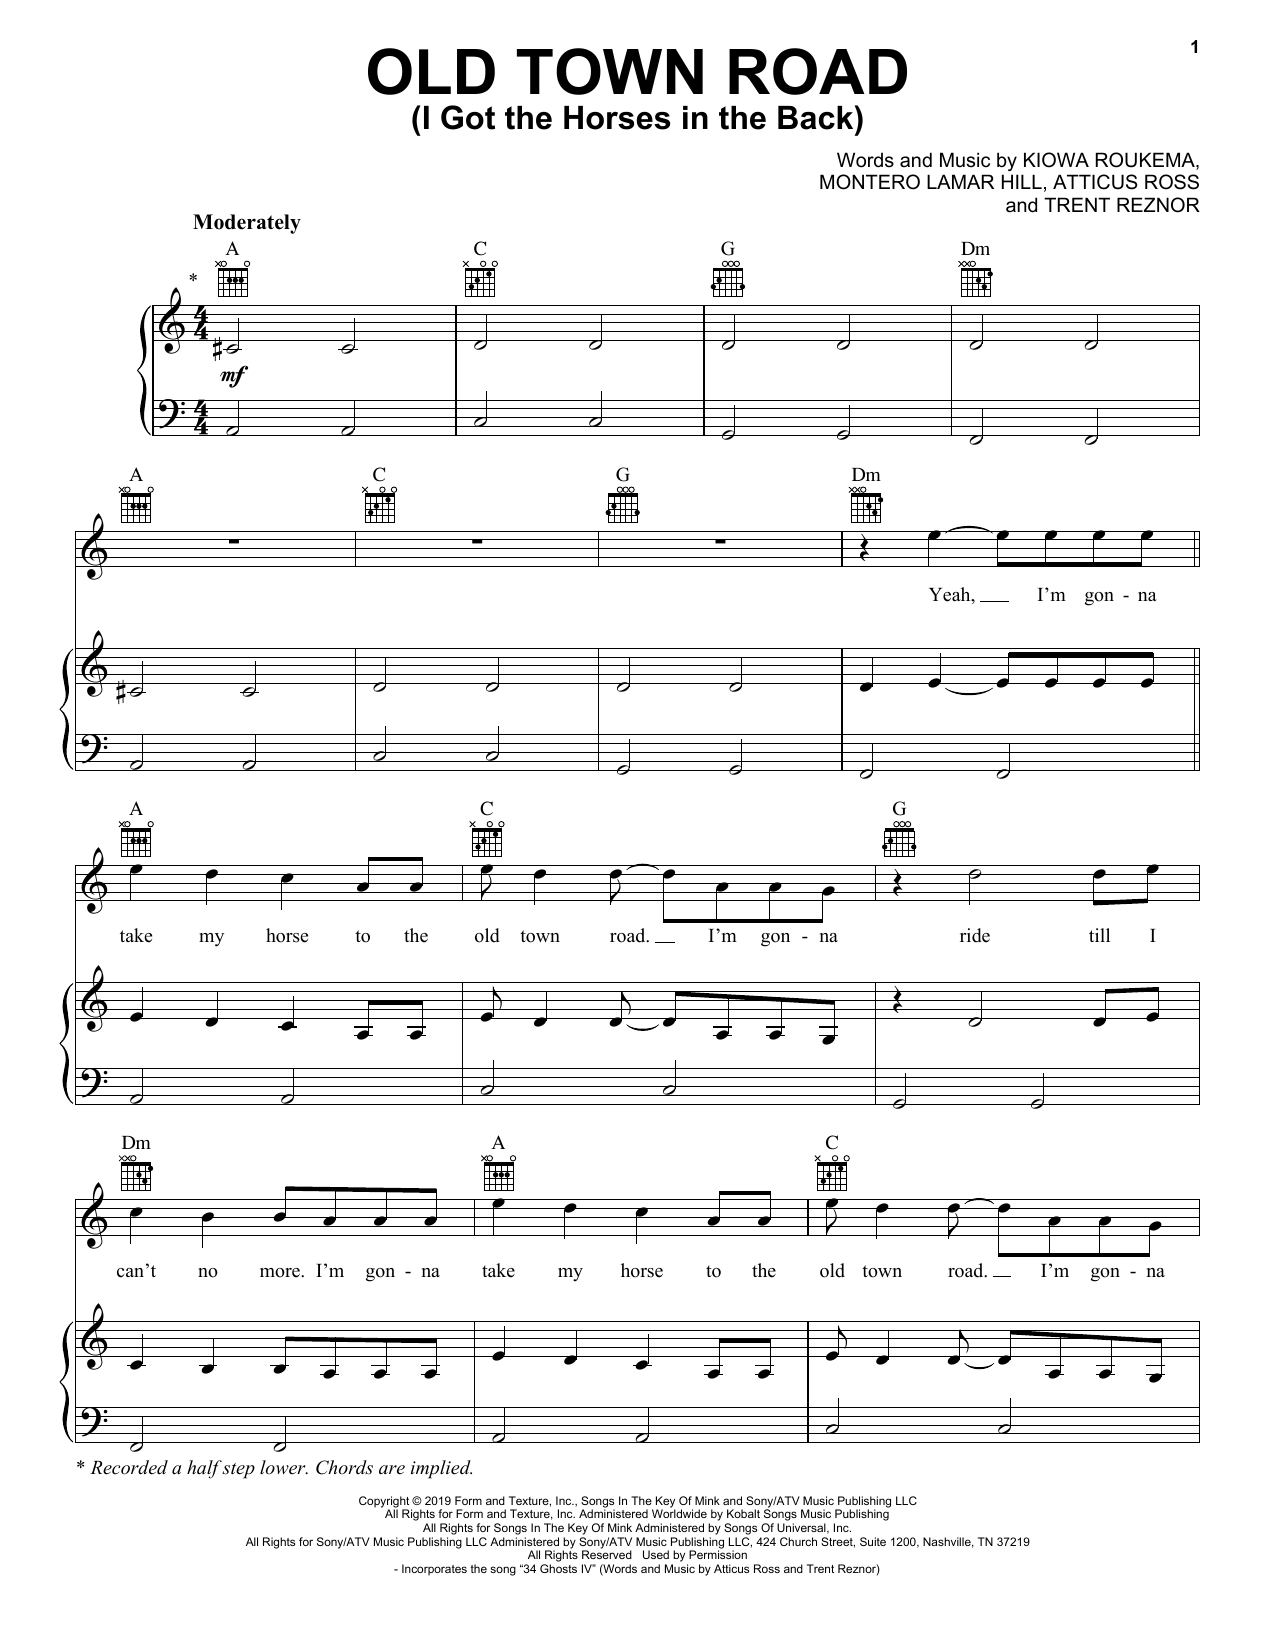 Lil Nas X 'Old Town Road (I Got The Horses In The Back)' Sheet Music, Notes & Chords